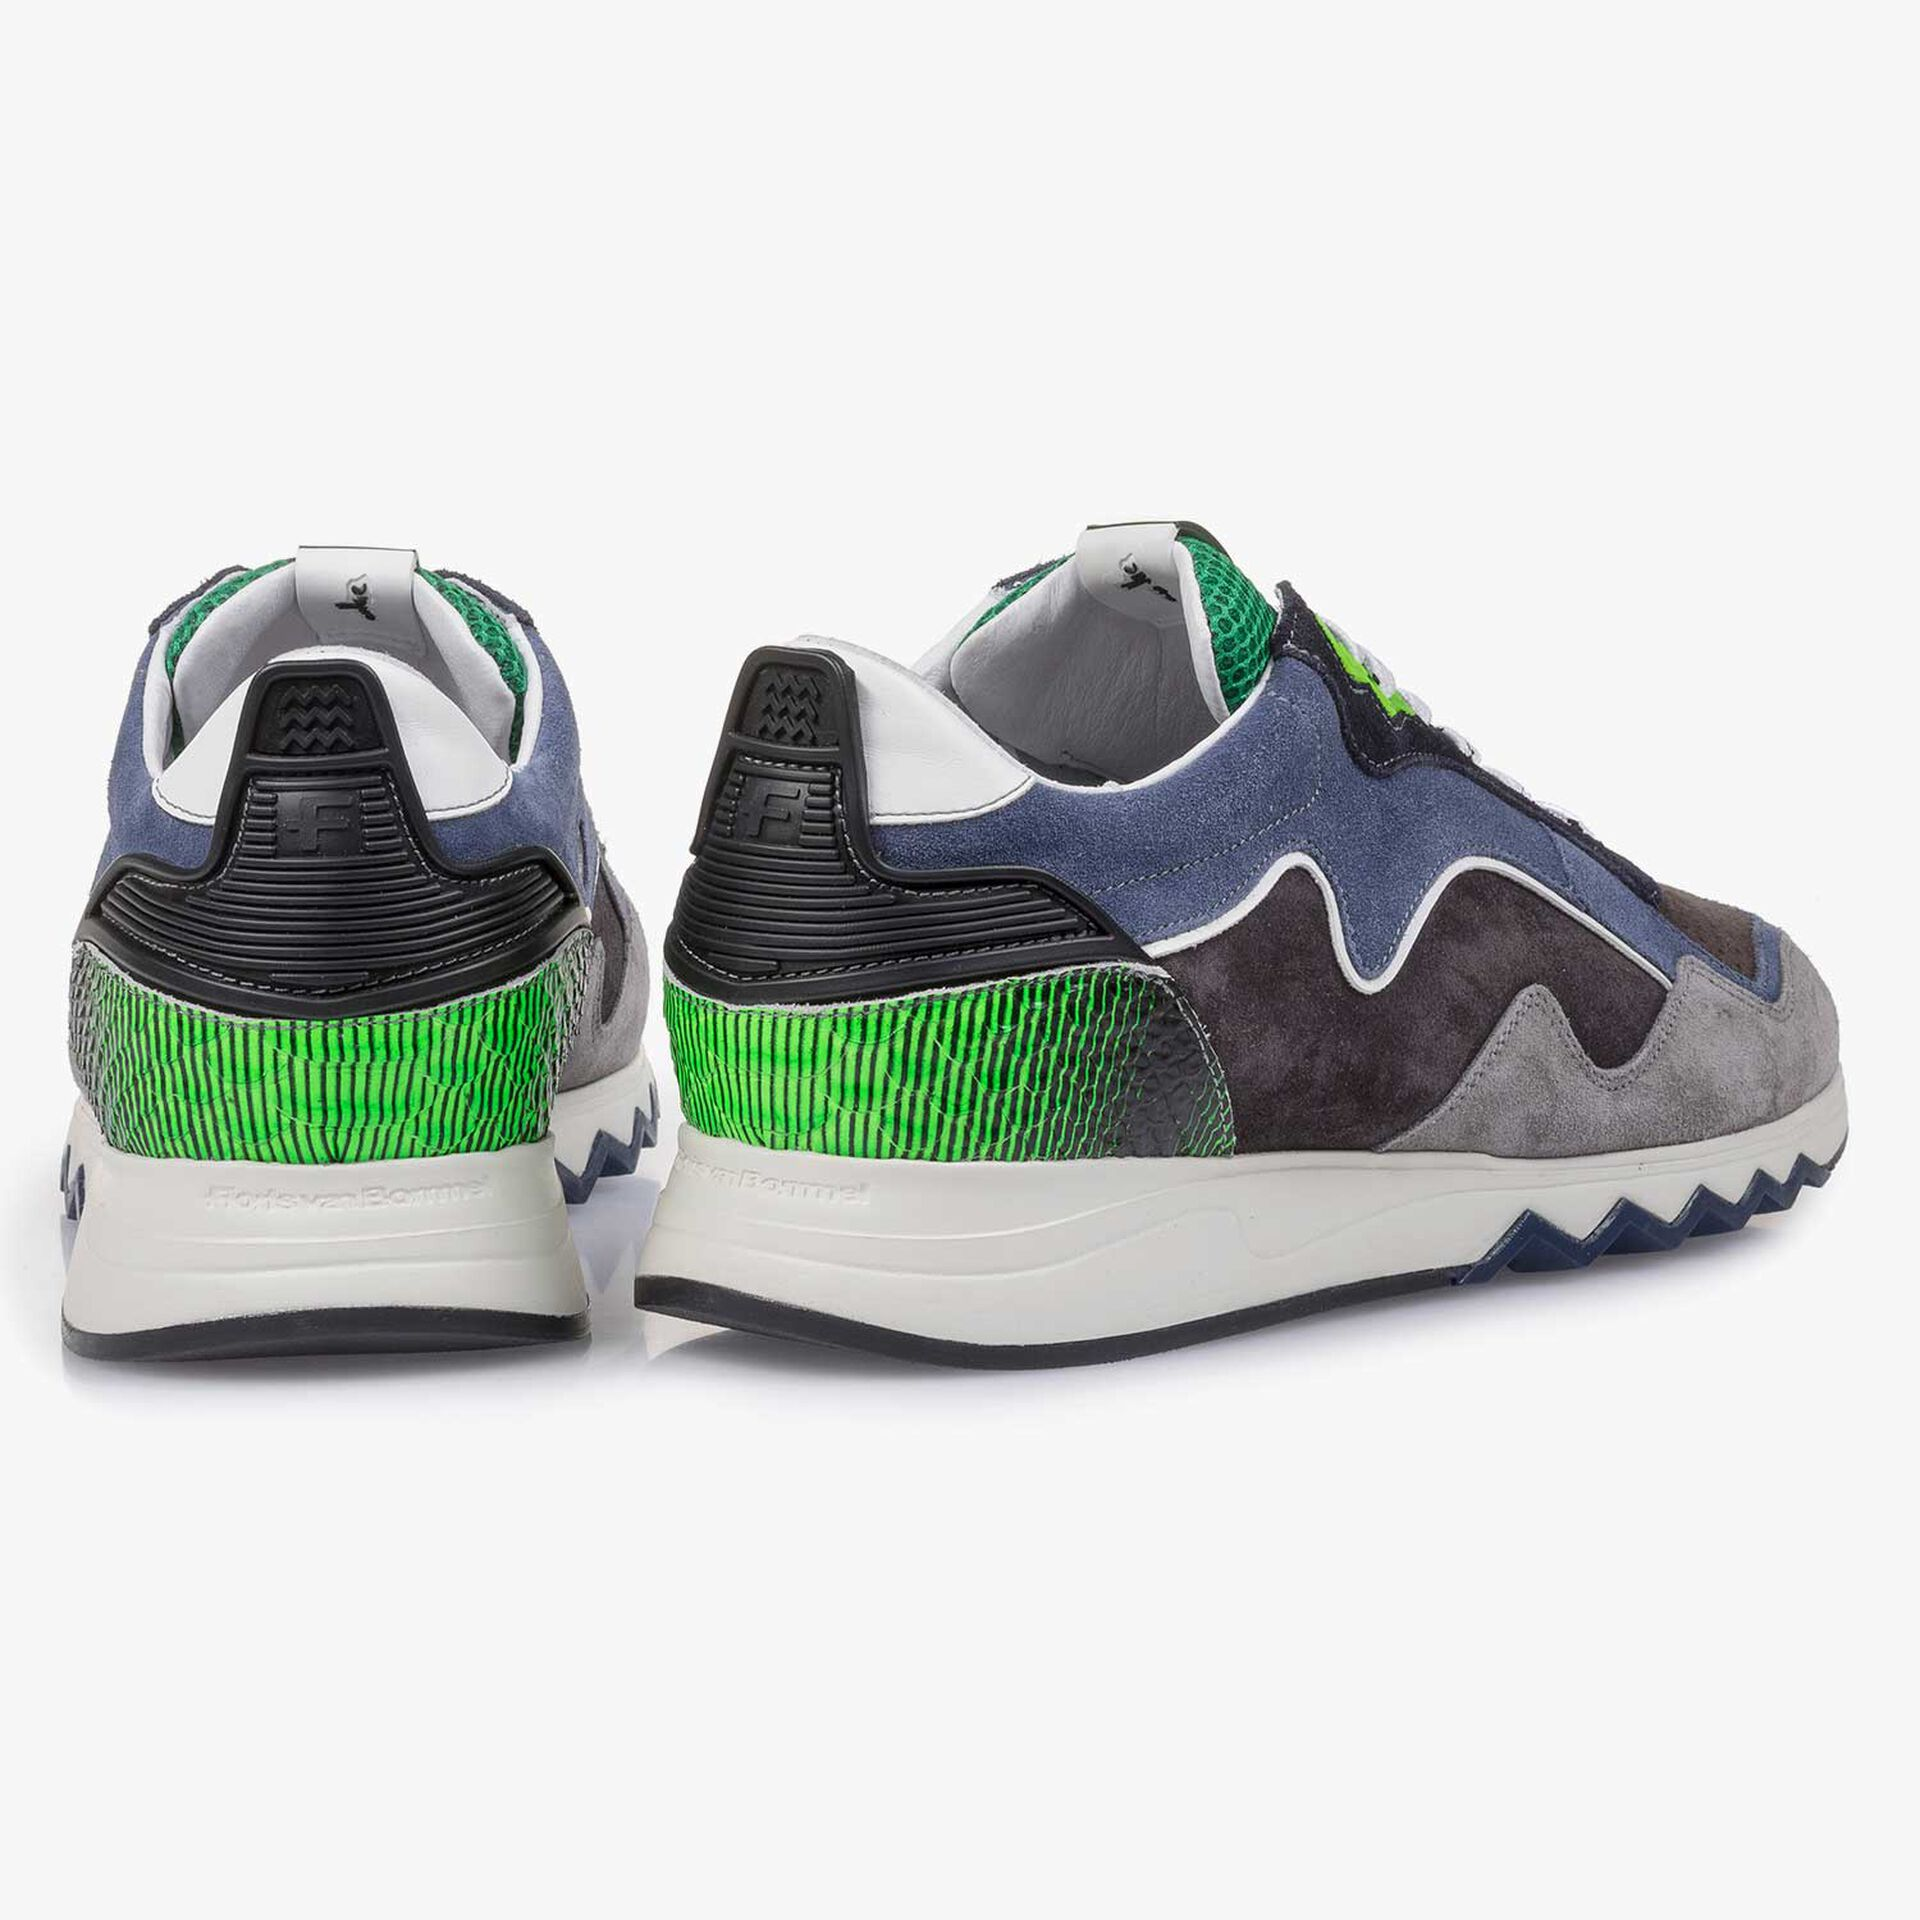 Blue-green suede leather sneaker